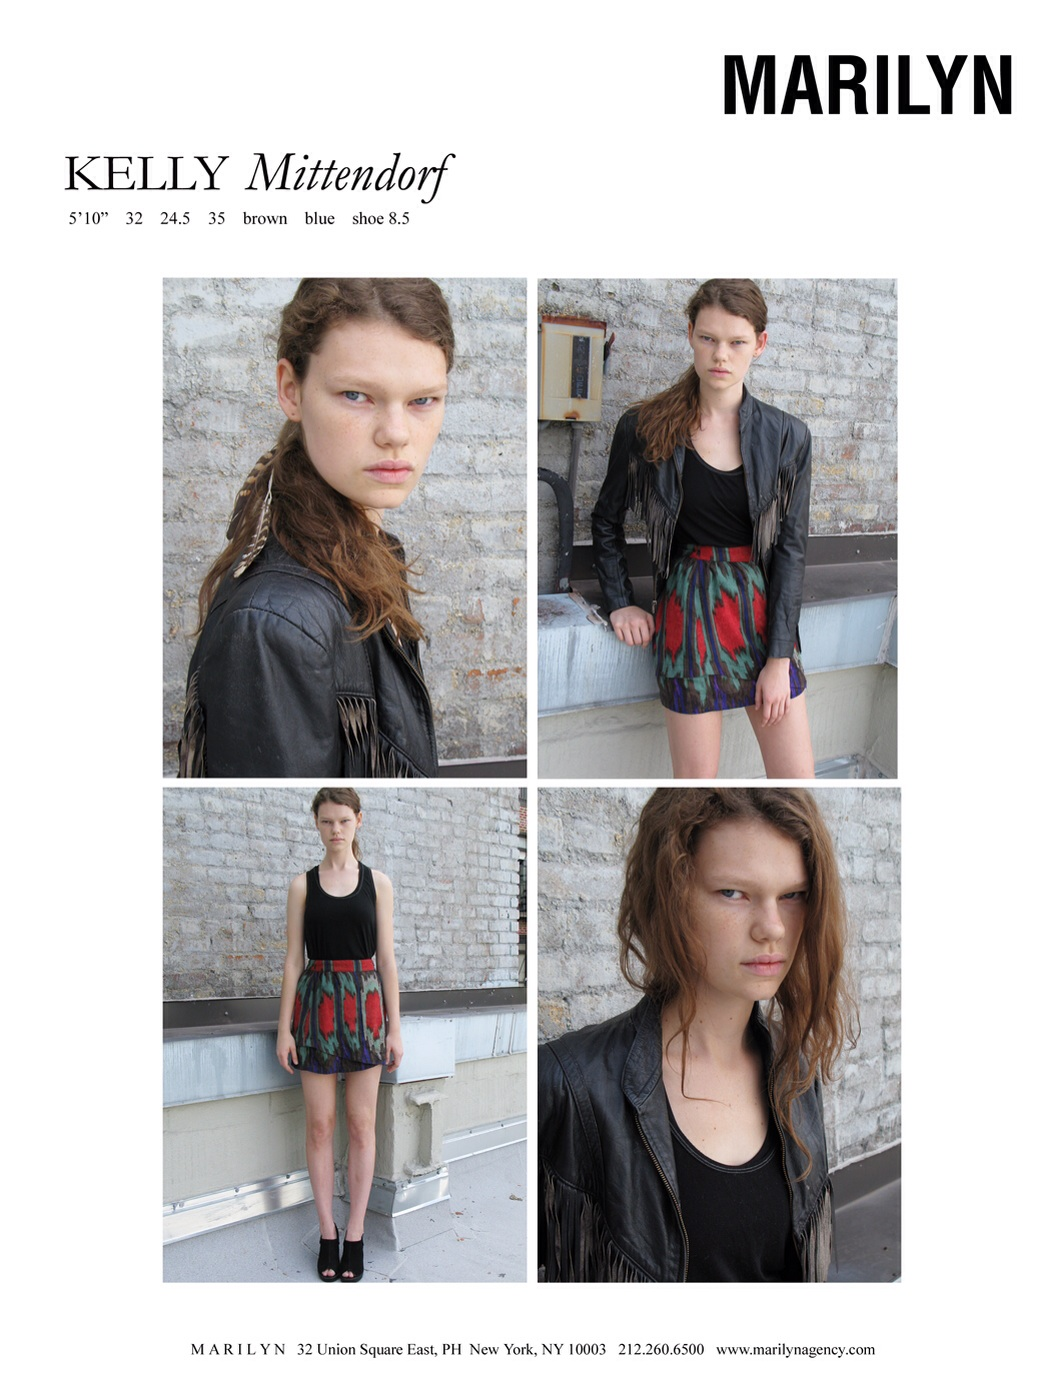 Kelly Mittendorf works very well in Tokyo and is with Bravo Models | Marilyn New York